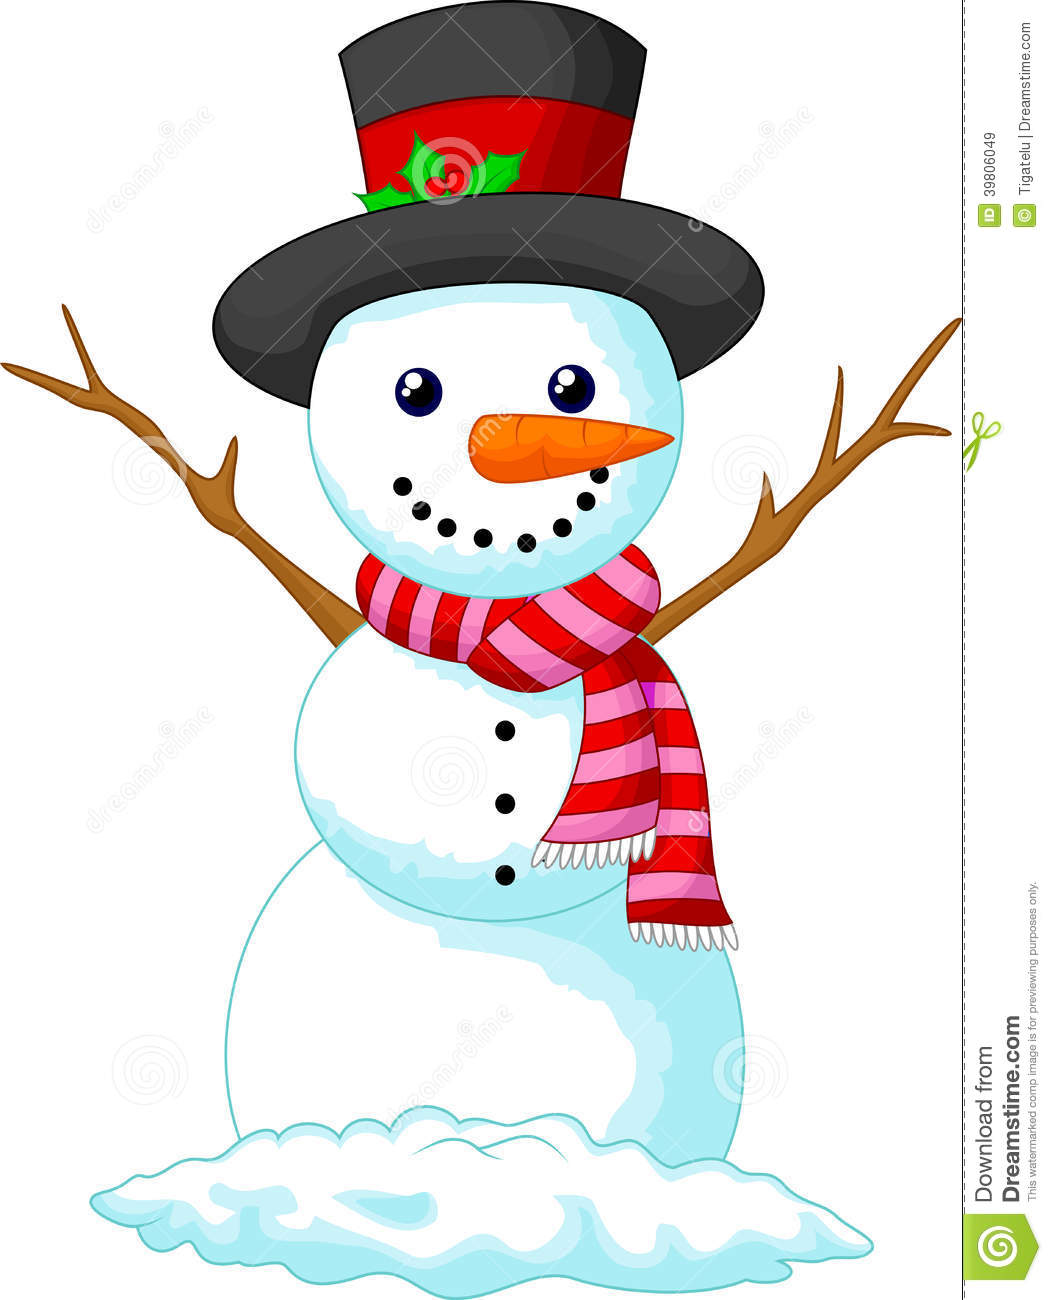 Christmas Snowman Cartoon Wearing A Hat And Red Scarf Stock Vector ...